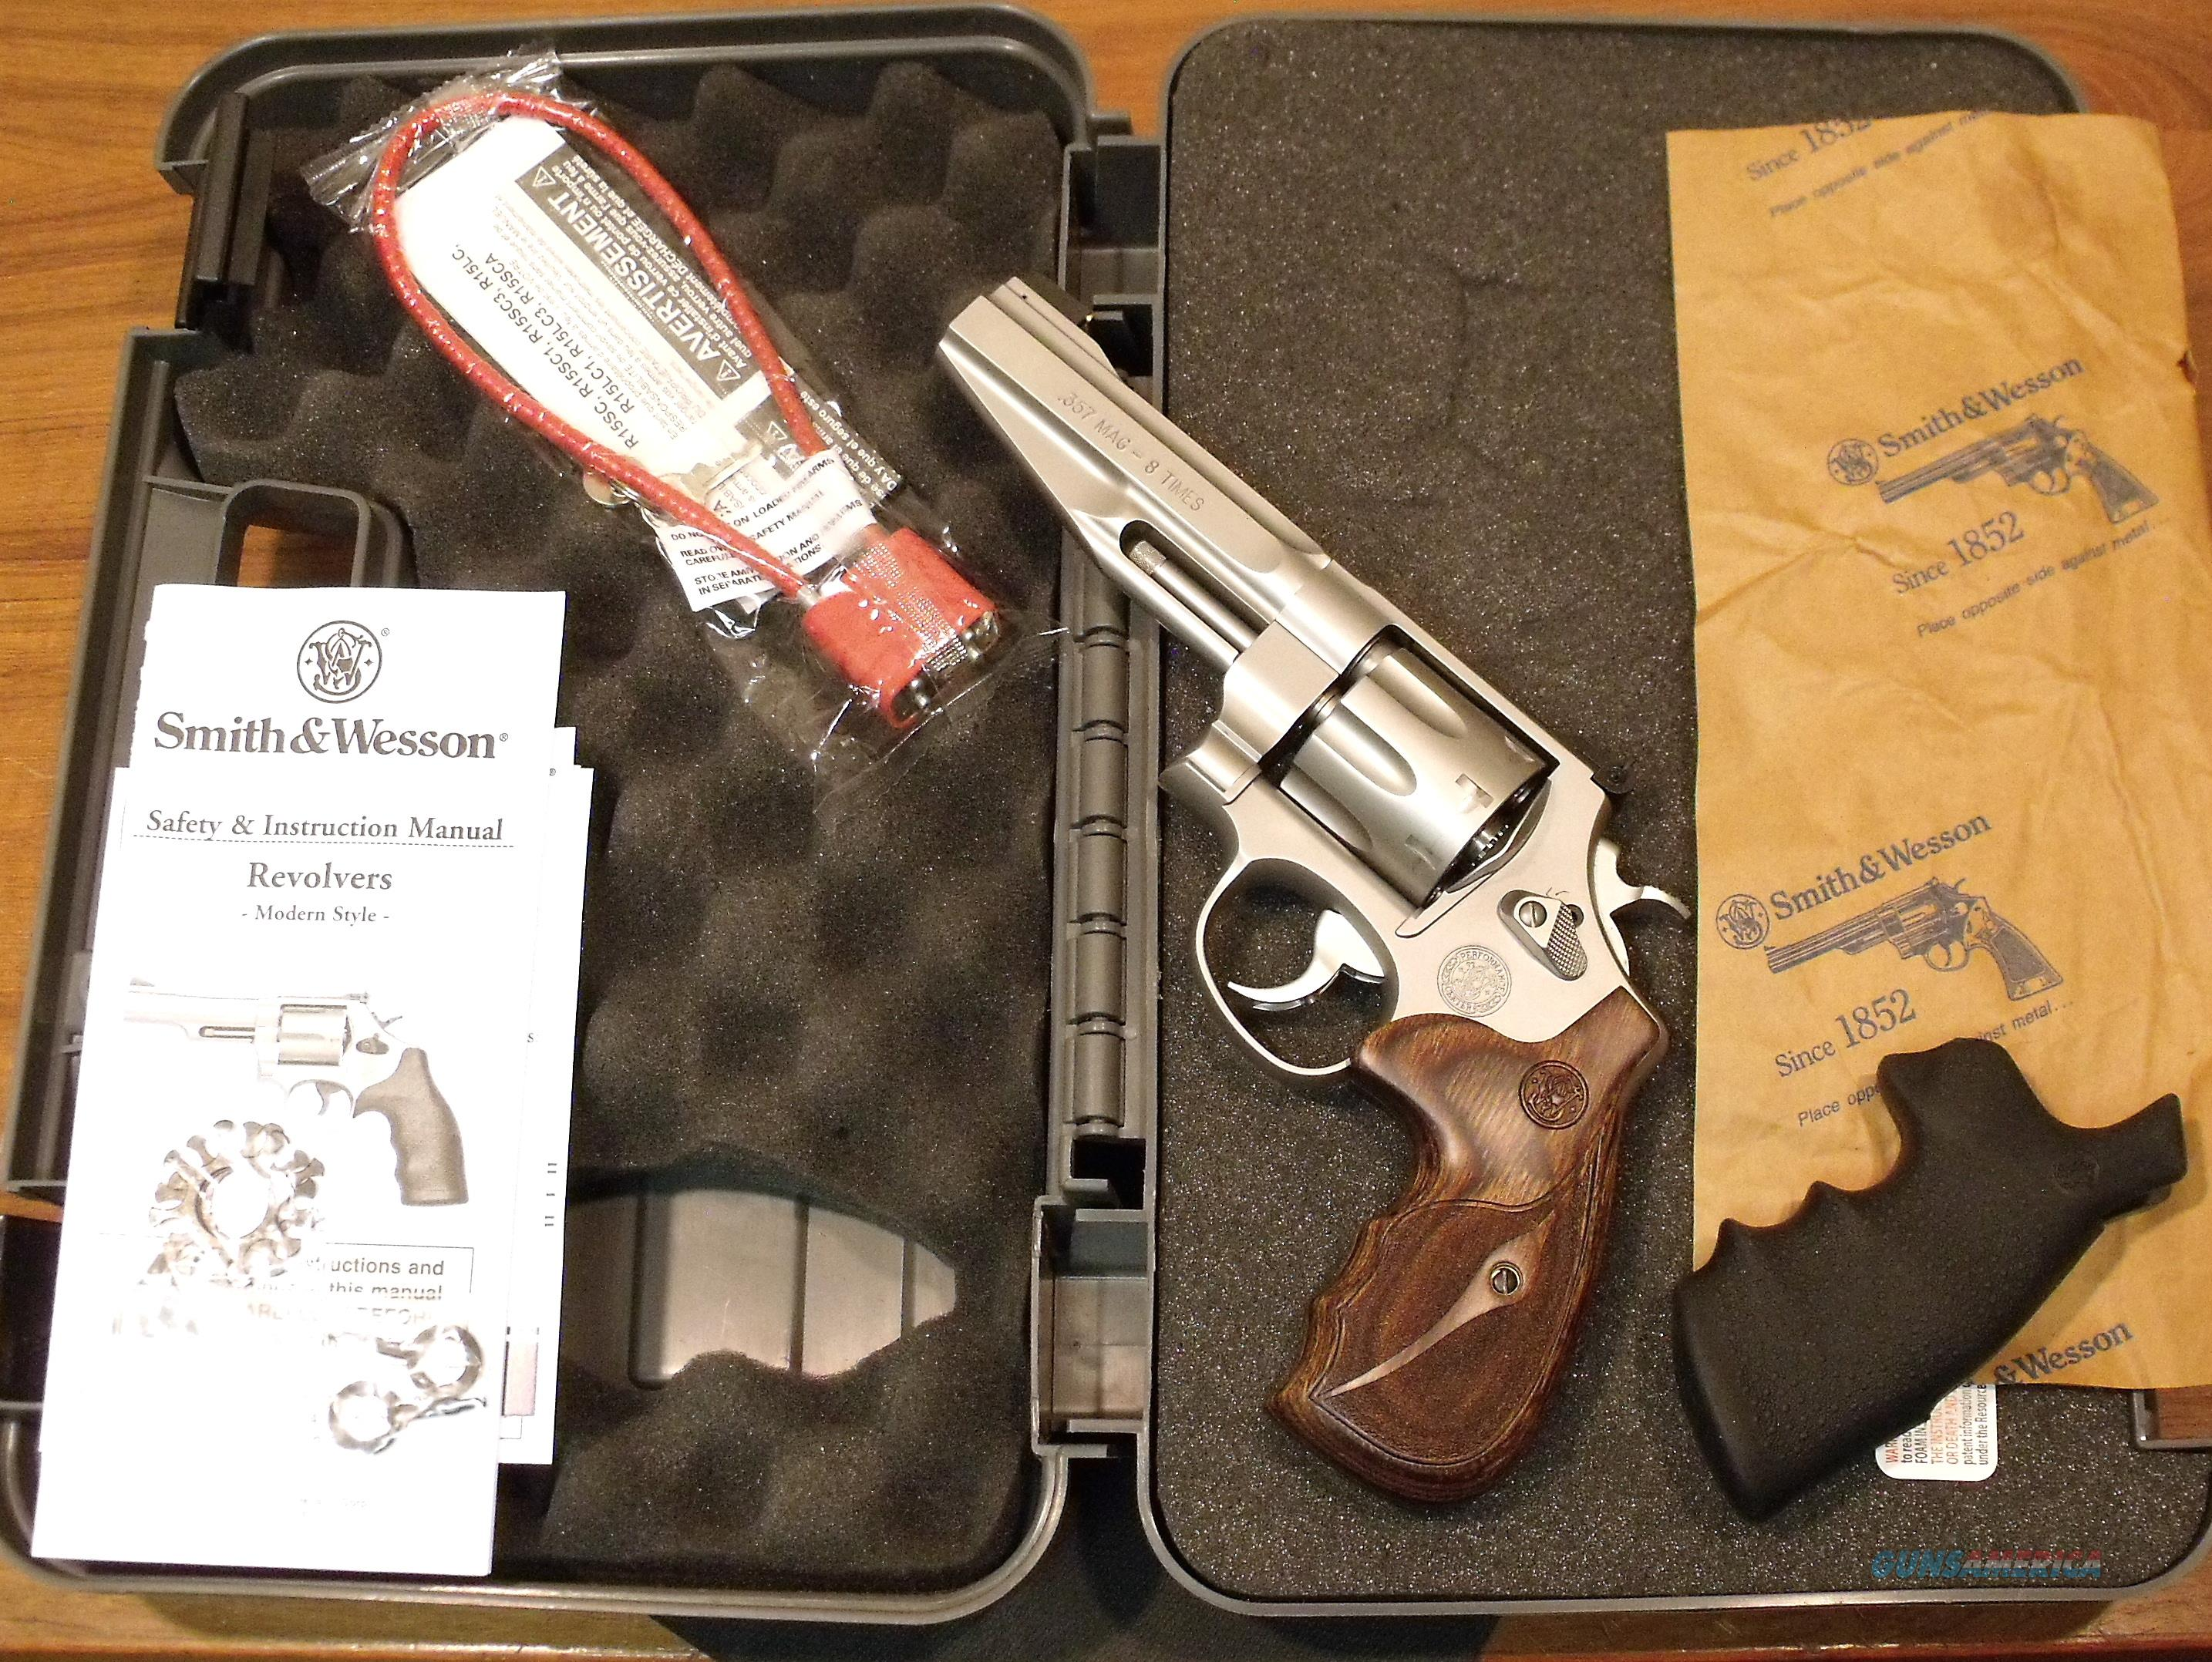 S&W Smith & Wesson 627-5 627 Performance Center Stainless 8-shot NEW CA OK 2 sets of Grips Cash Only Special  Guns > Pistols > Smith & Wesson Revolvers > Performance Center